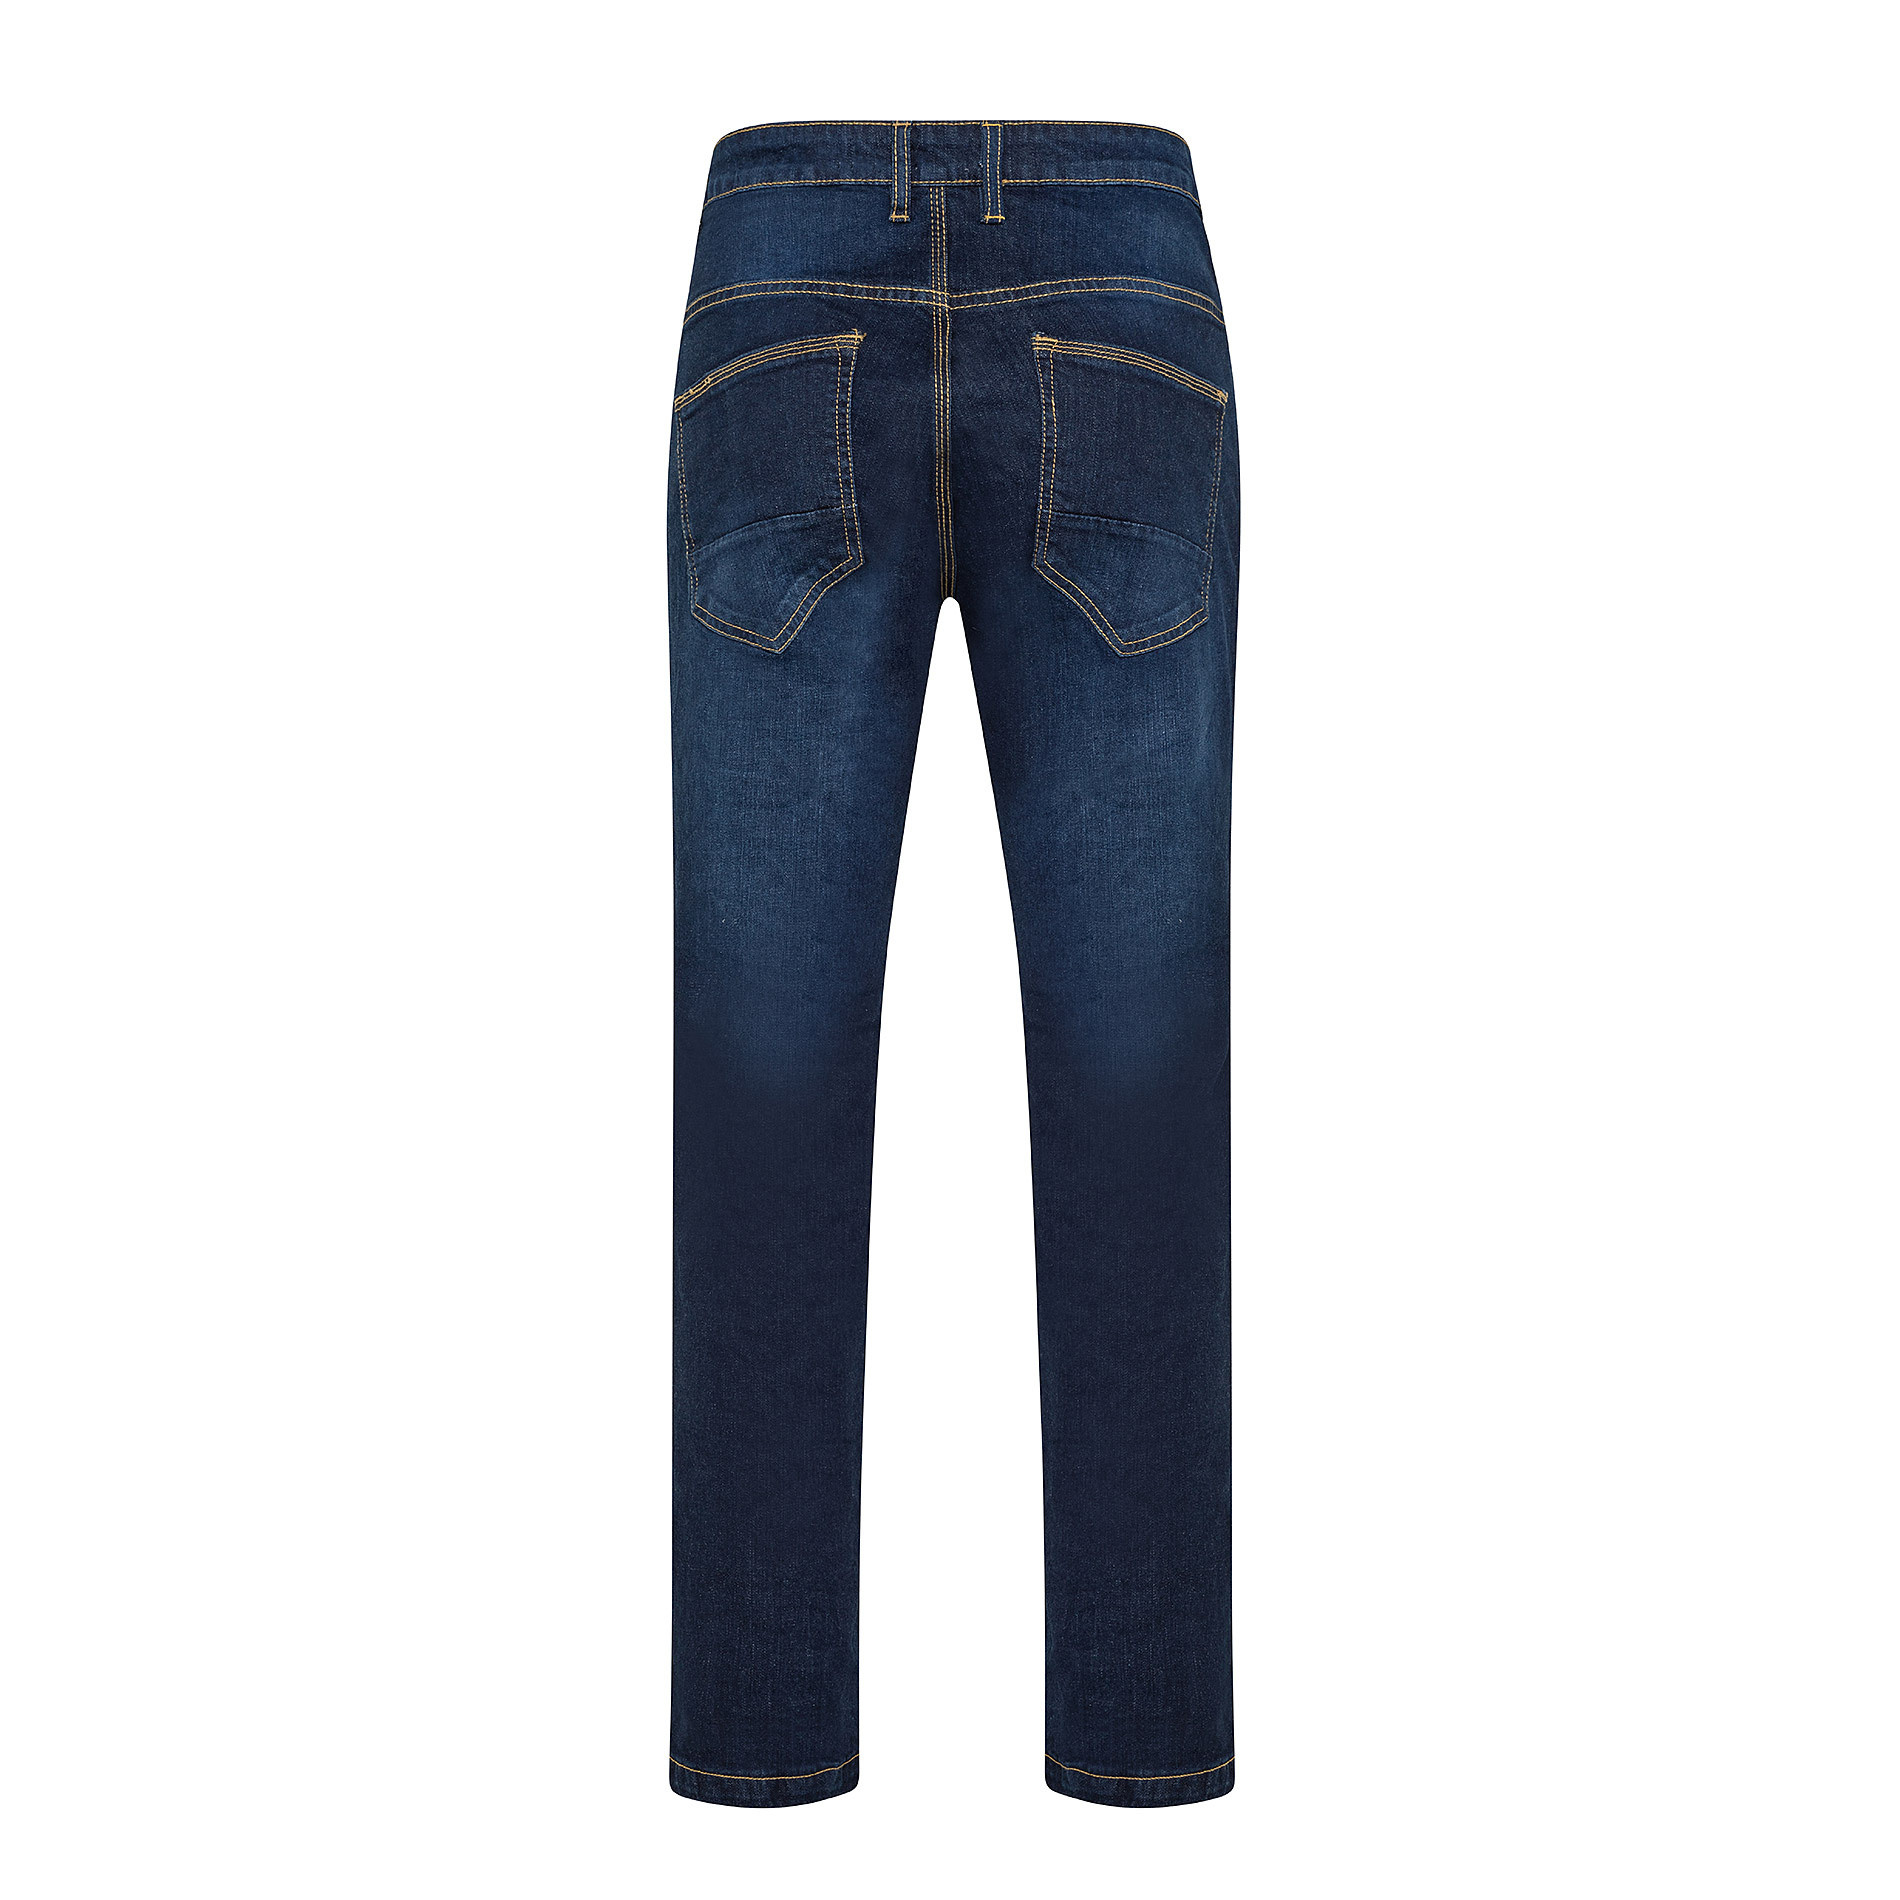 Jeans stretch 5 tasche JCT, Blu scuro, large image number 1